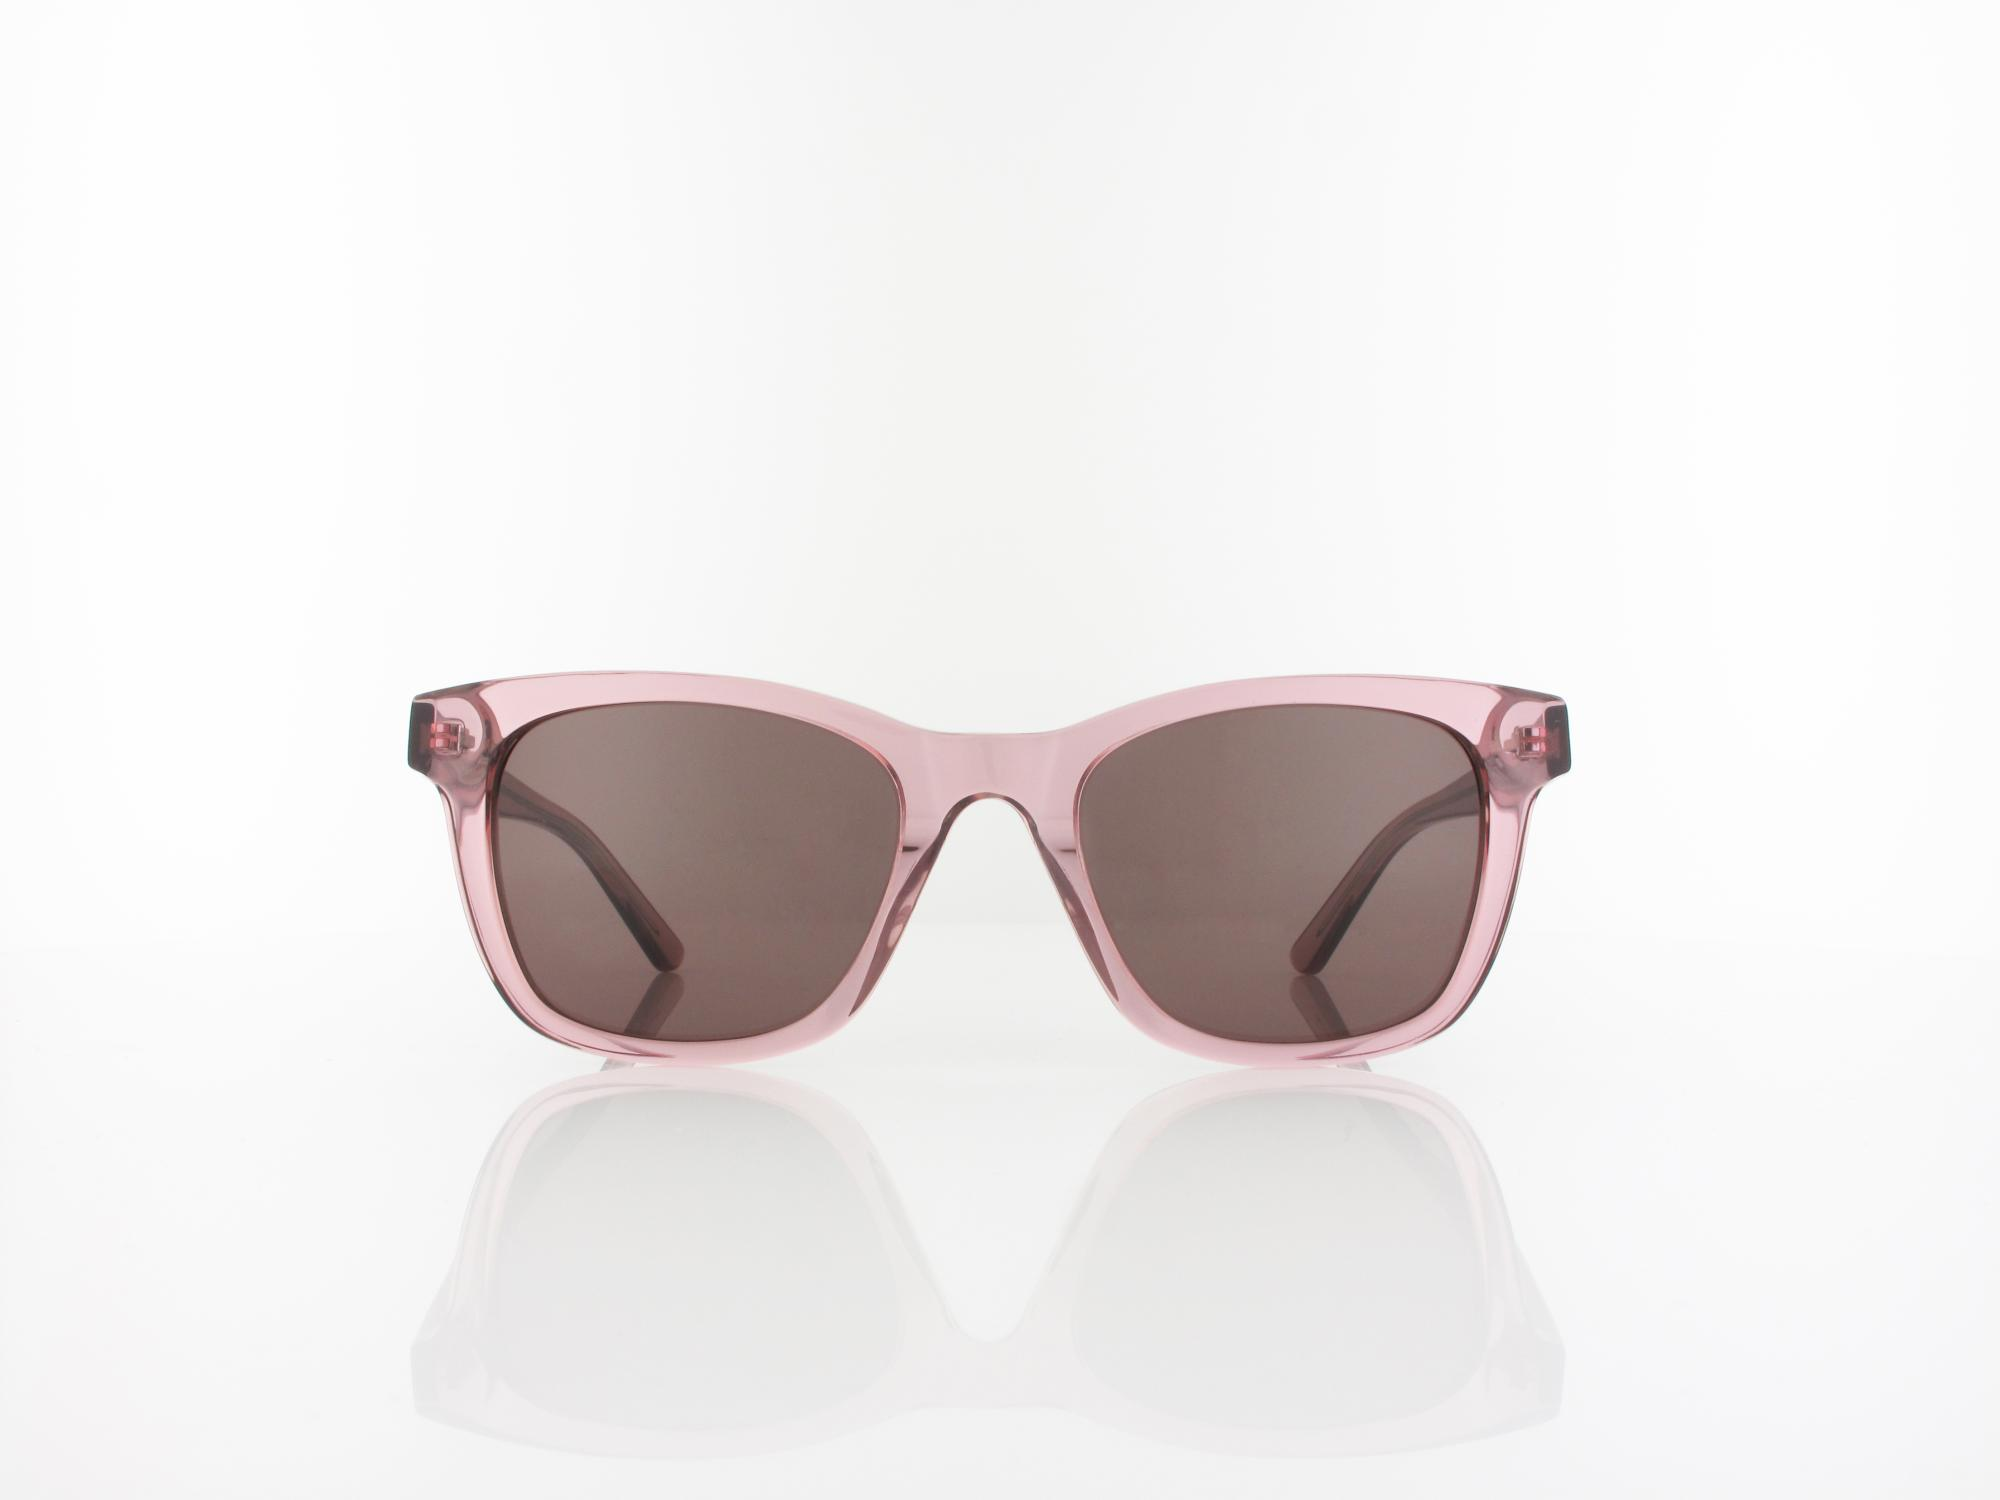 Calvin Klein | CK20501S 535 52 | crystal mauve/rose / solid taupe